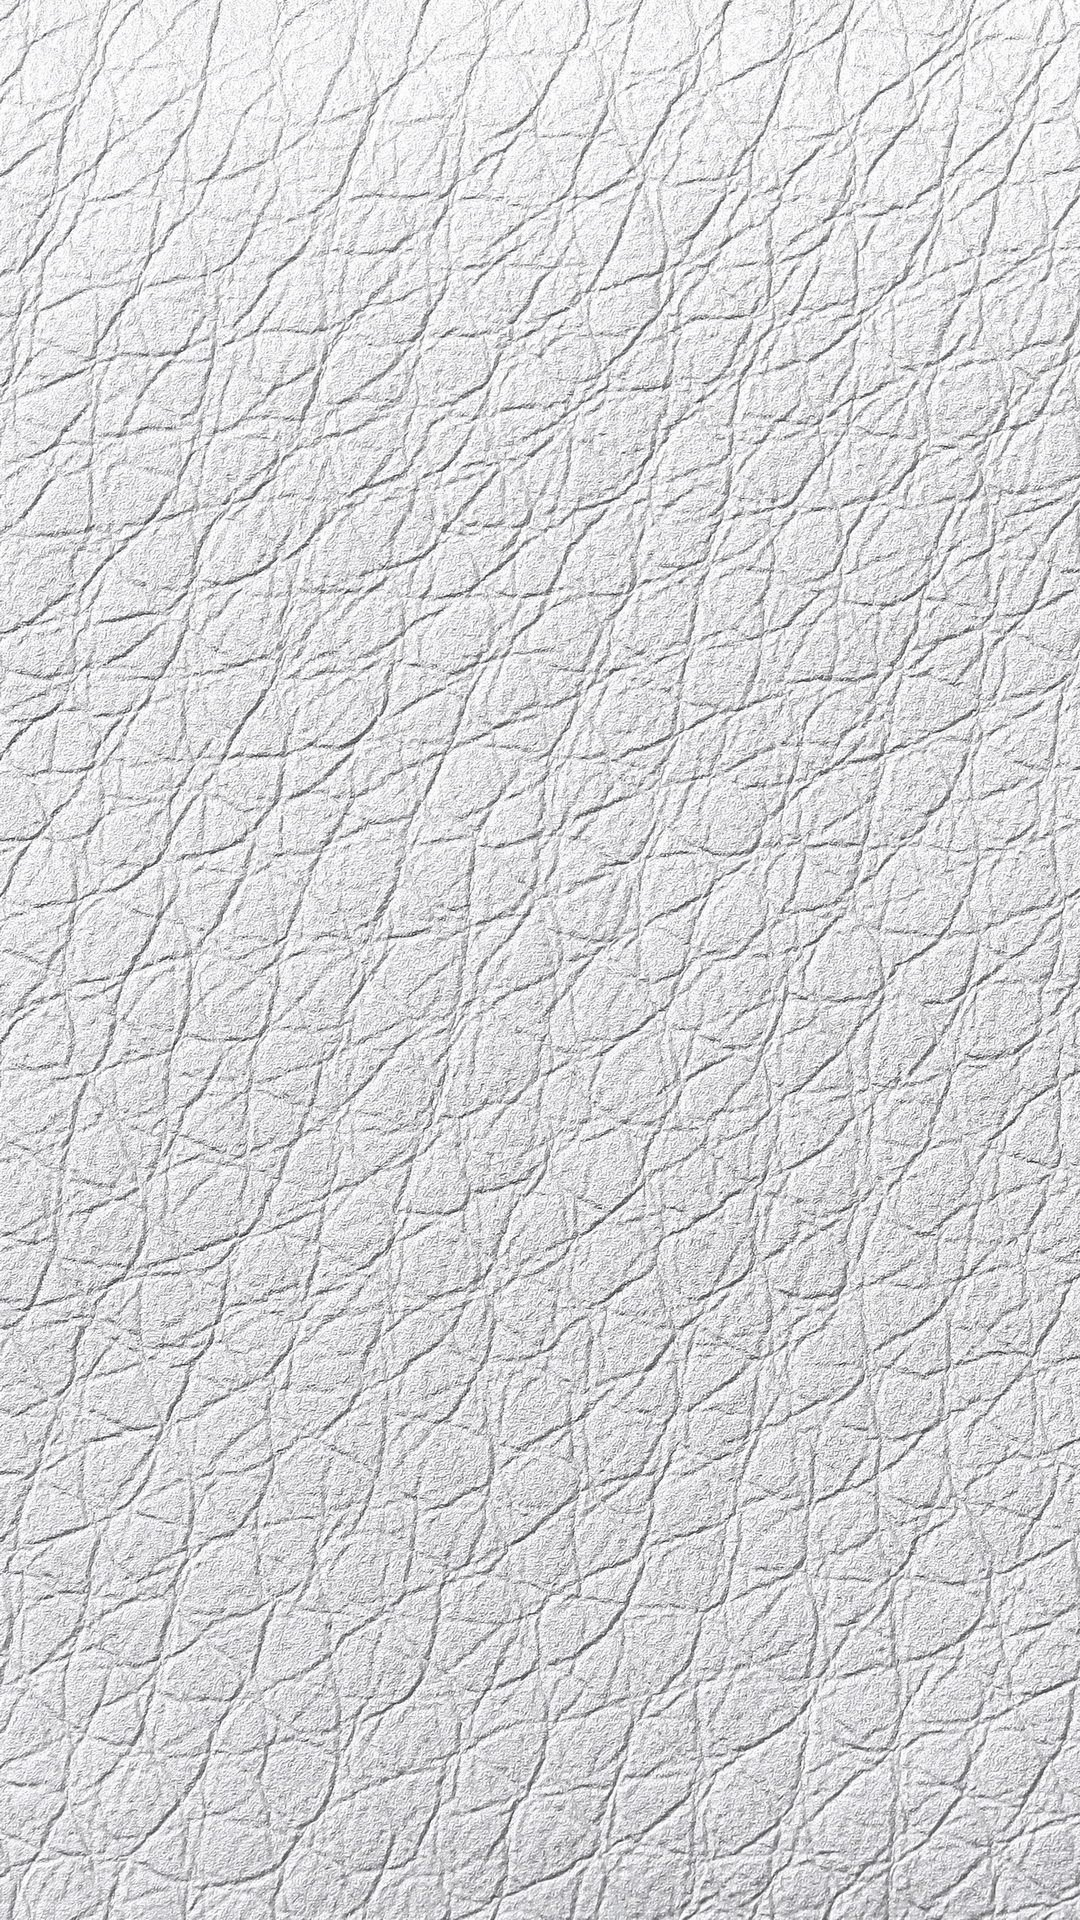 Abstract White Leather iPhone 6 Plus Wallpapers   background design 1080x1920